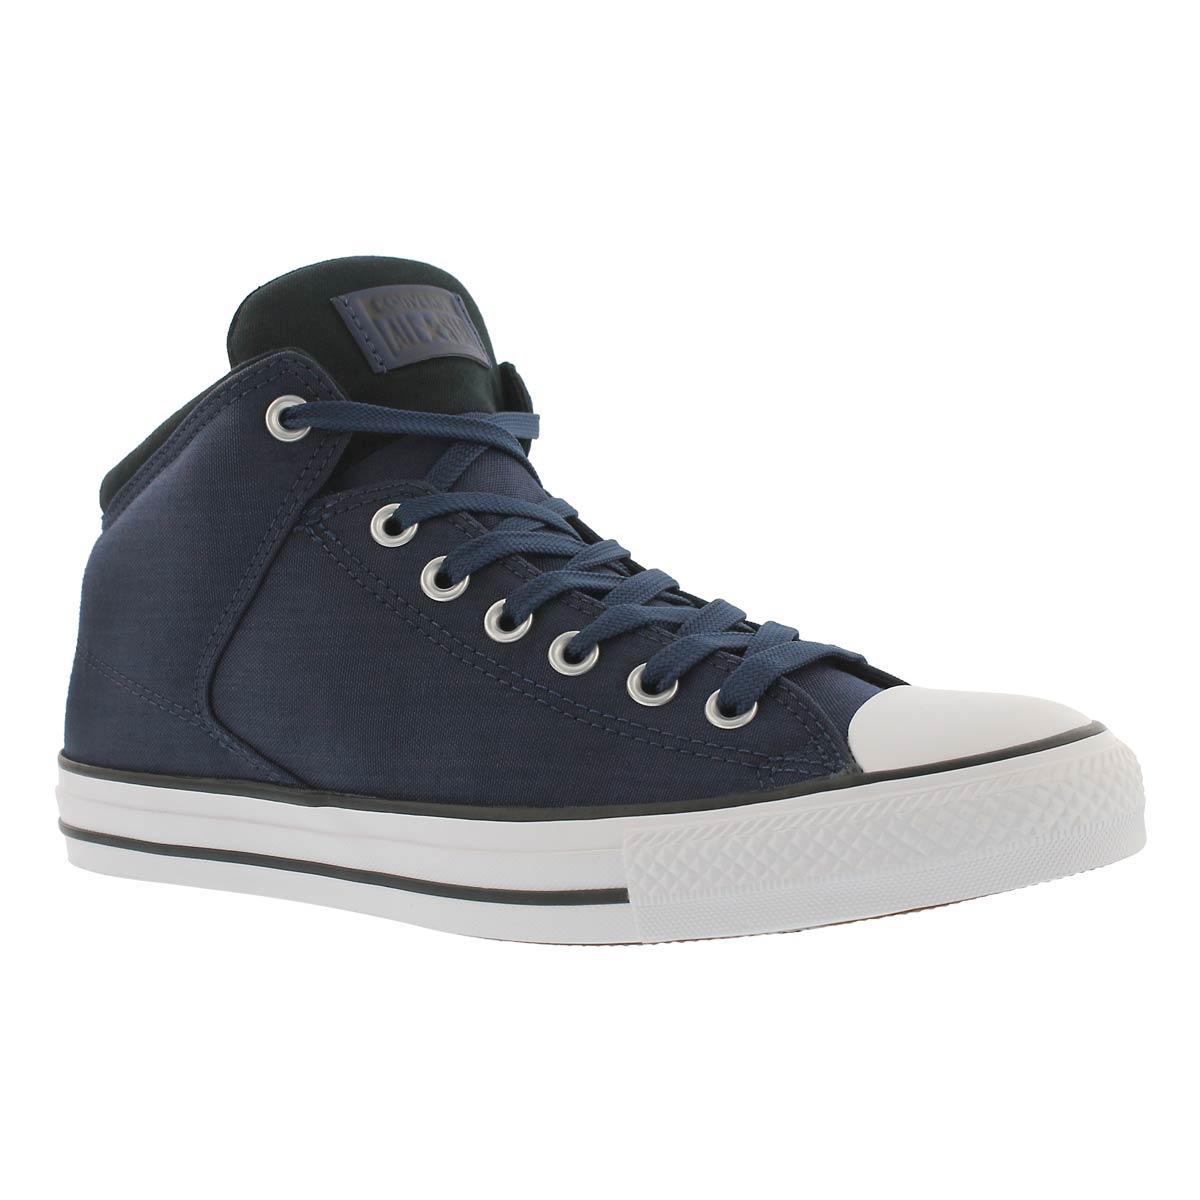 Men's CT ALL STAR HIGH STREET HI CORD nvy sneakers